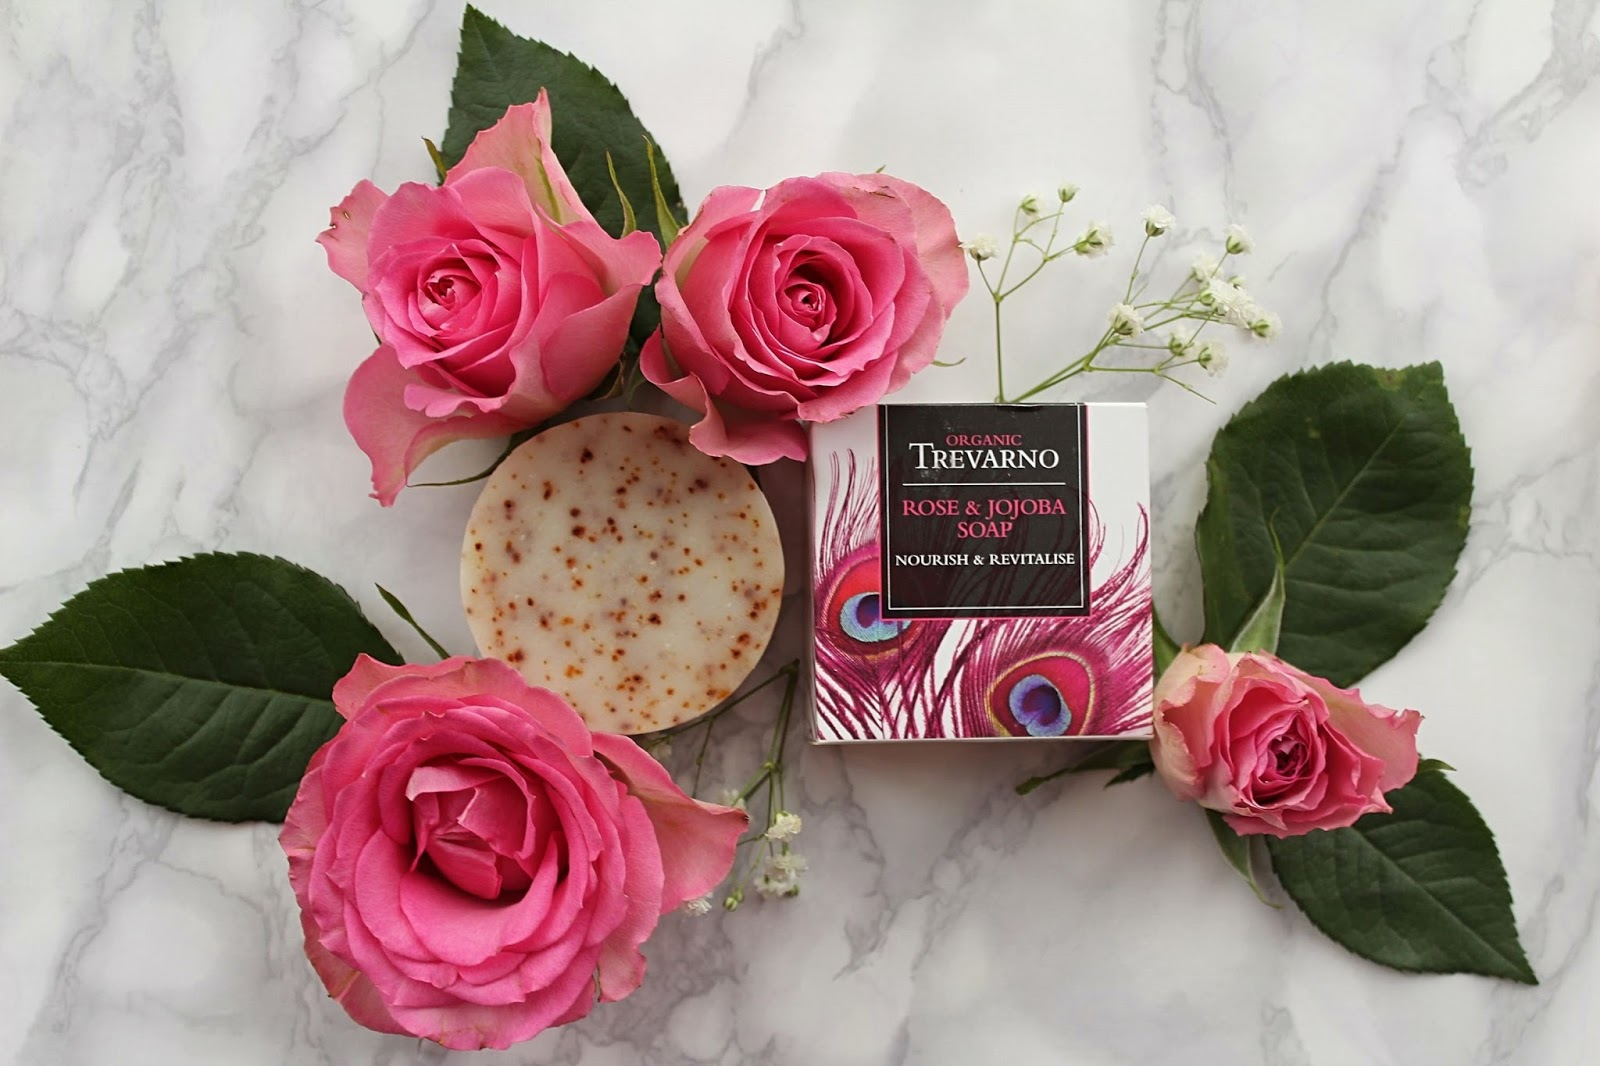 Beauty Basics – Trevarno Rose and Jojoba soap